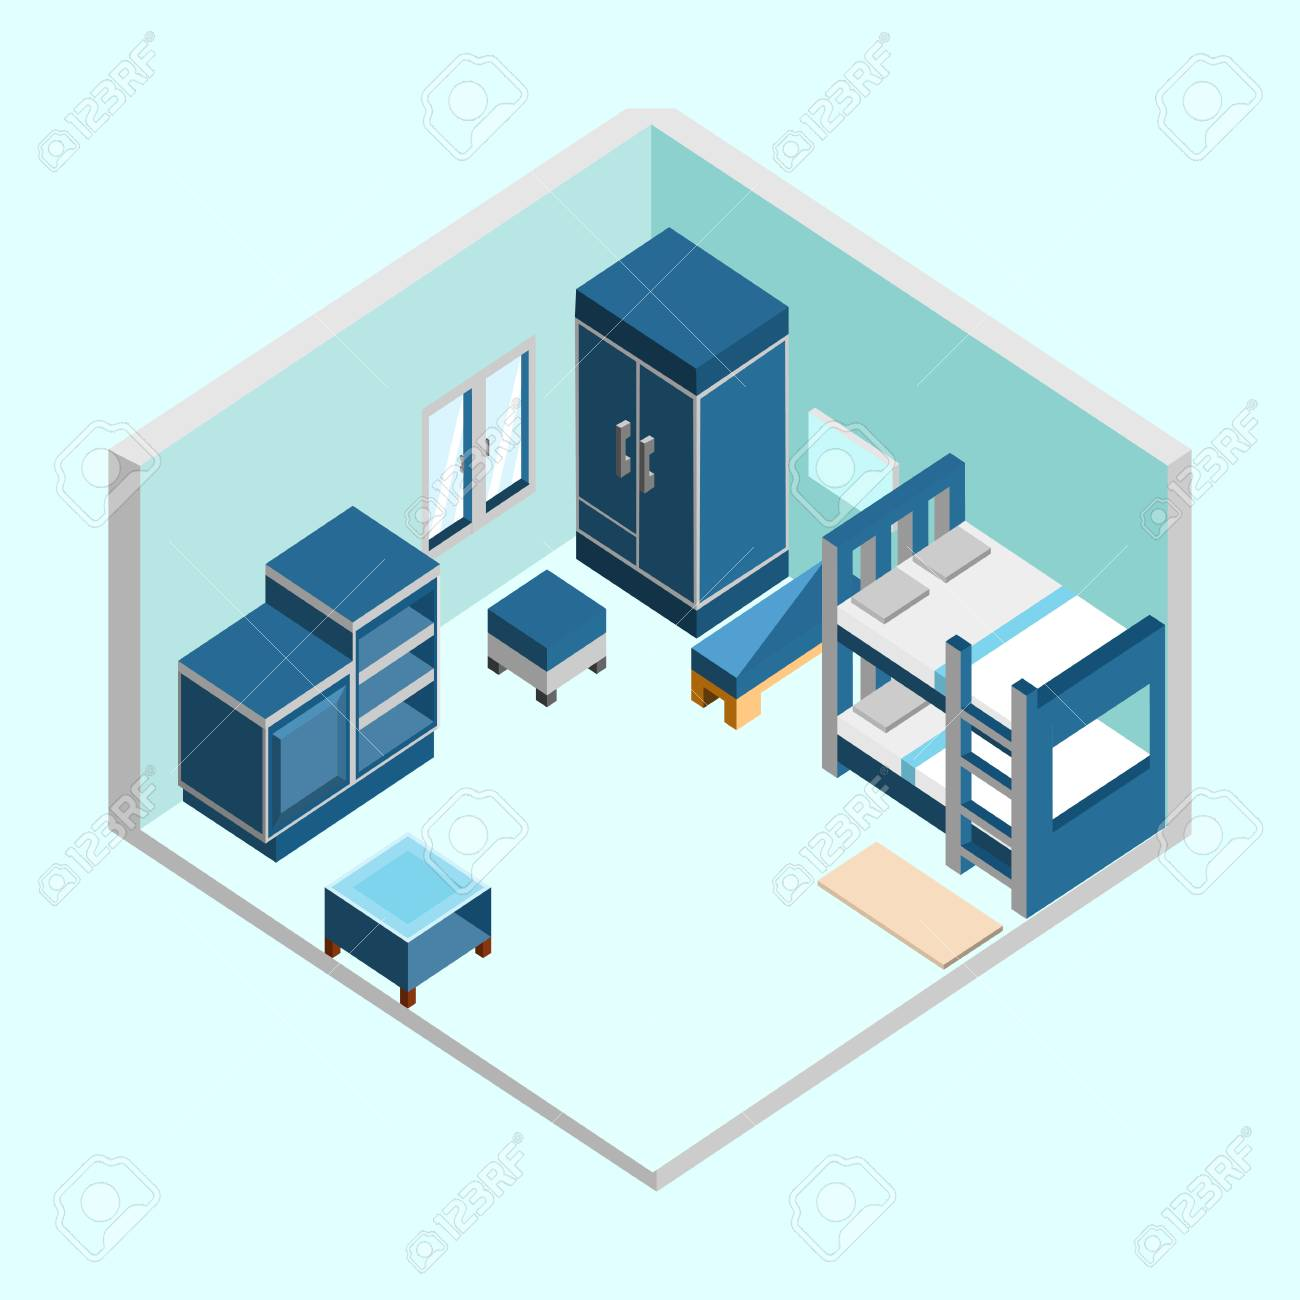 Blue Kid Bedroom Isometric Home Interior Vector Illustration Graphic Design  Stock Vector   97798017